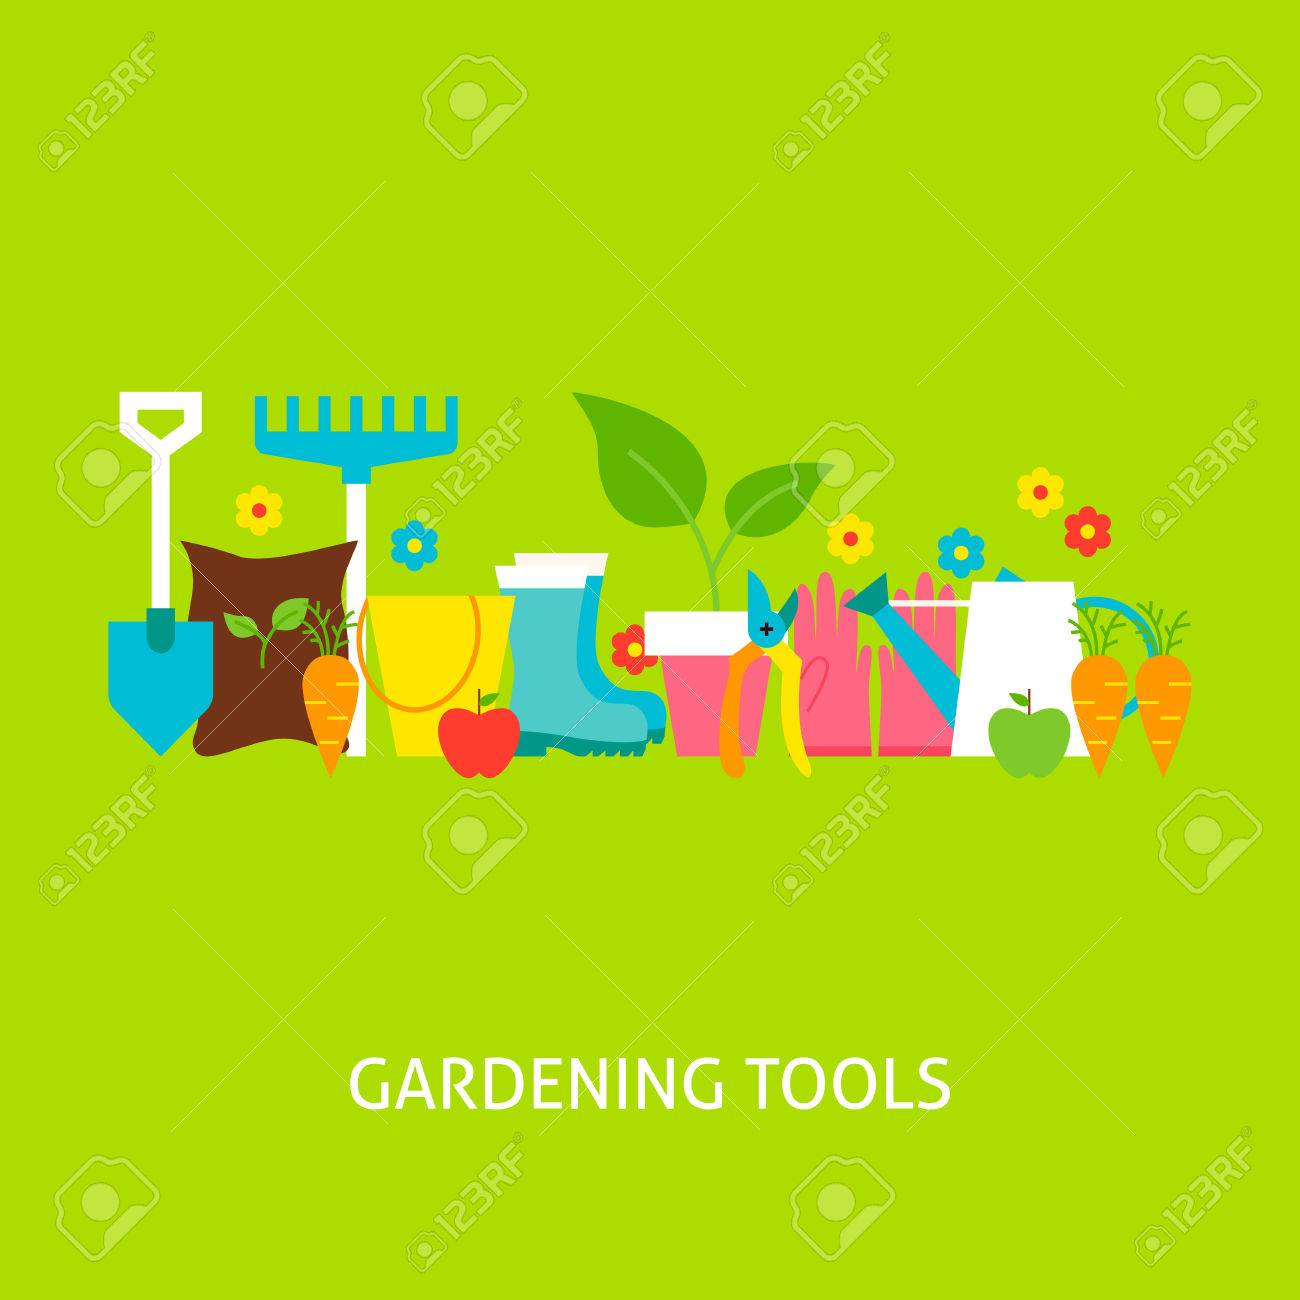 Poster design tools - Gardening Tools Concept Flat Poster Design Vector Illustration Collection Of Nature Garden Colorful Objects